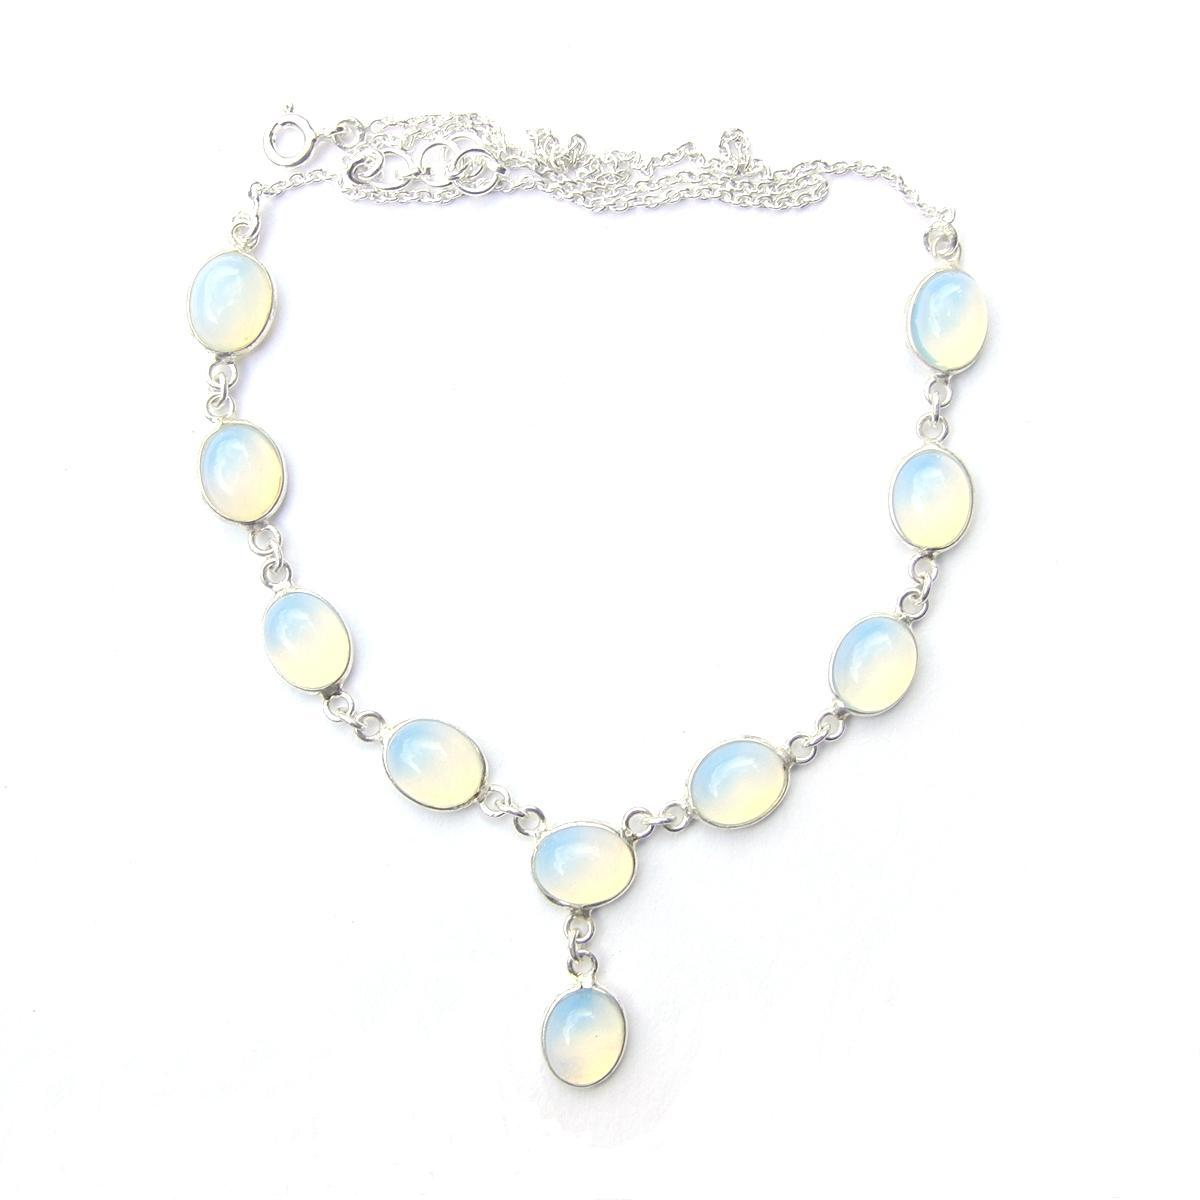 Opalite Large Oval Necklace